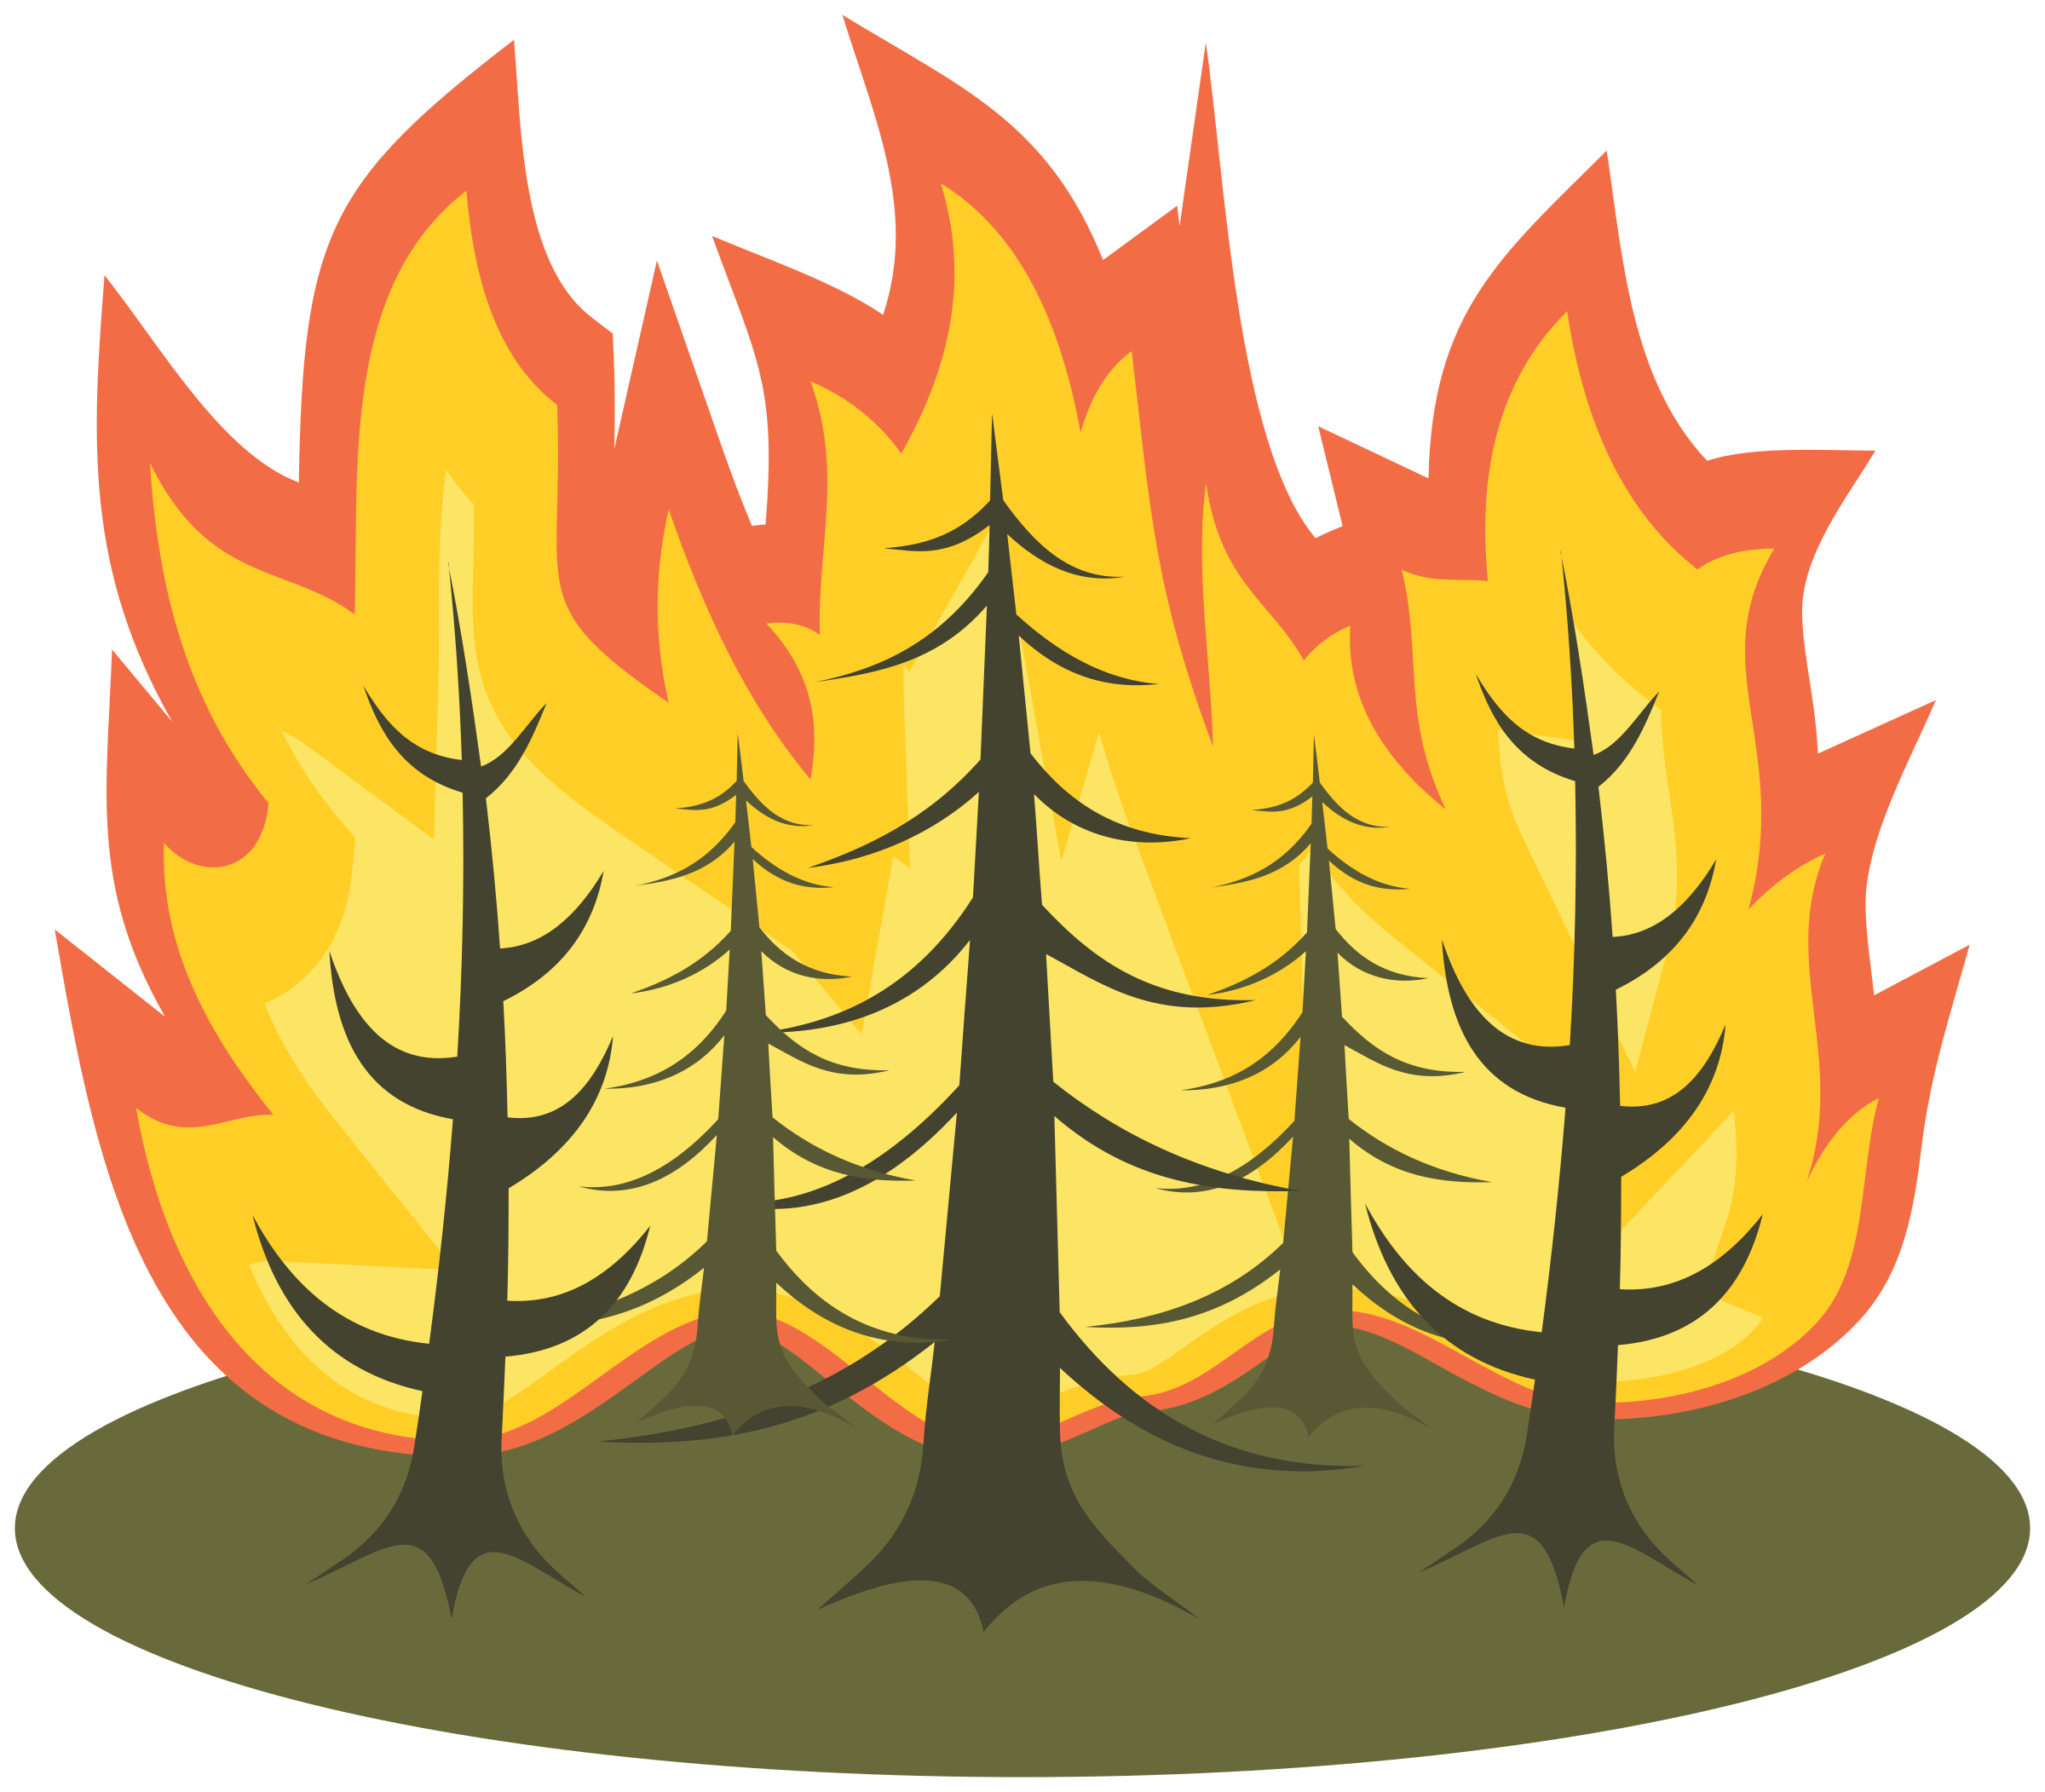 Fire clipart pdf. Forest group